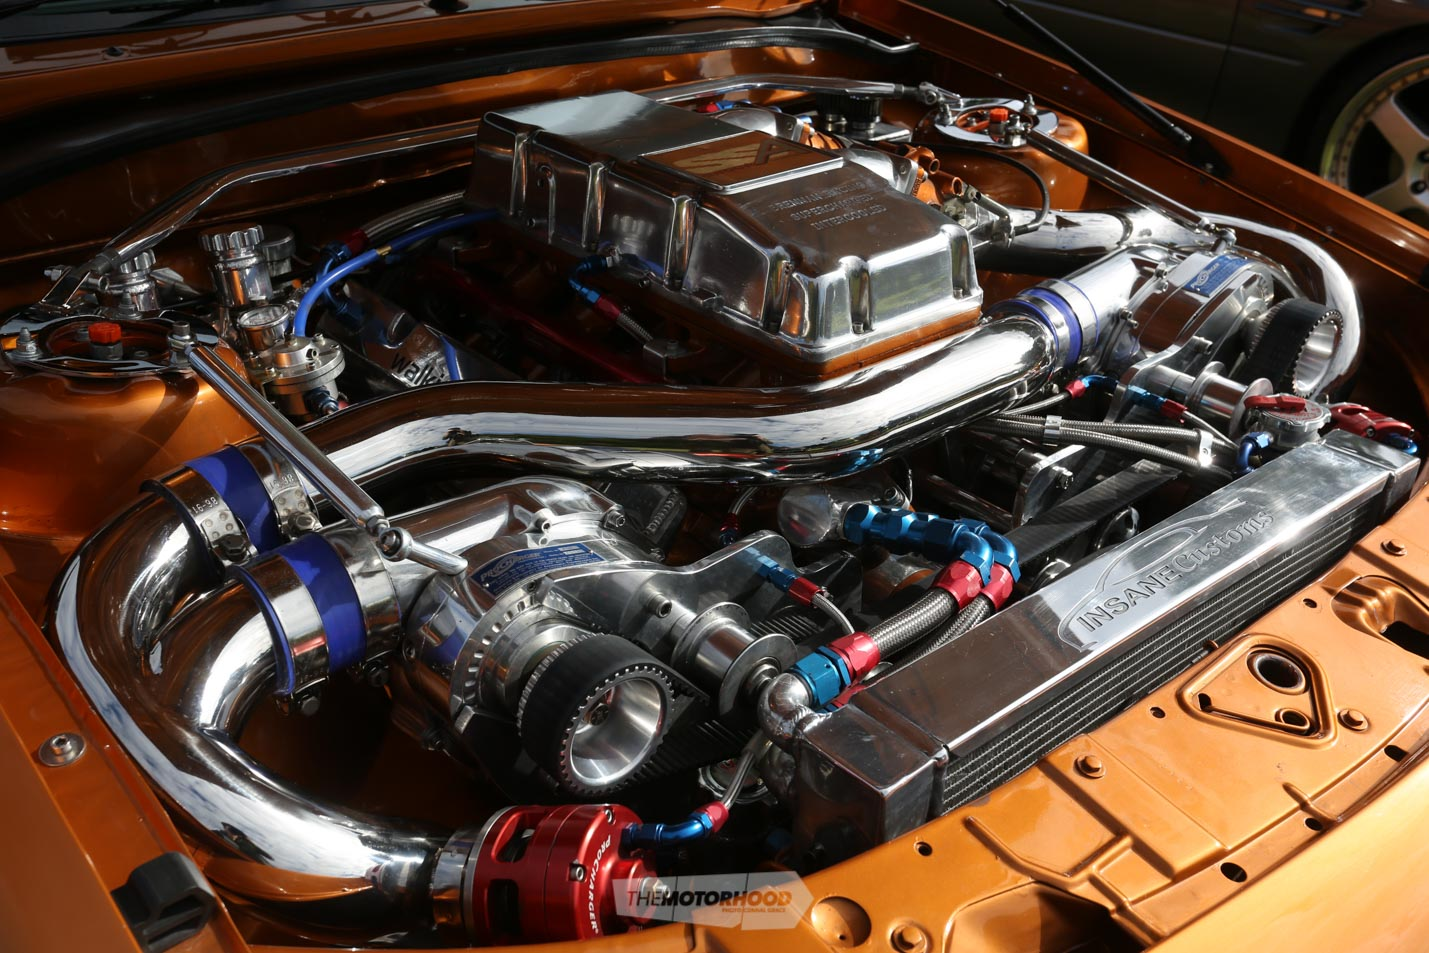 General excellence: GMs galore at Clevedon — The Motorhood